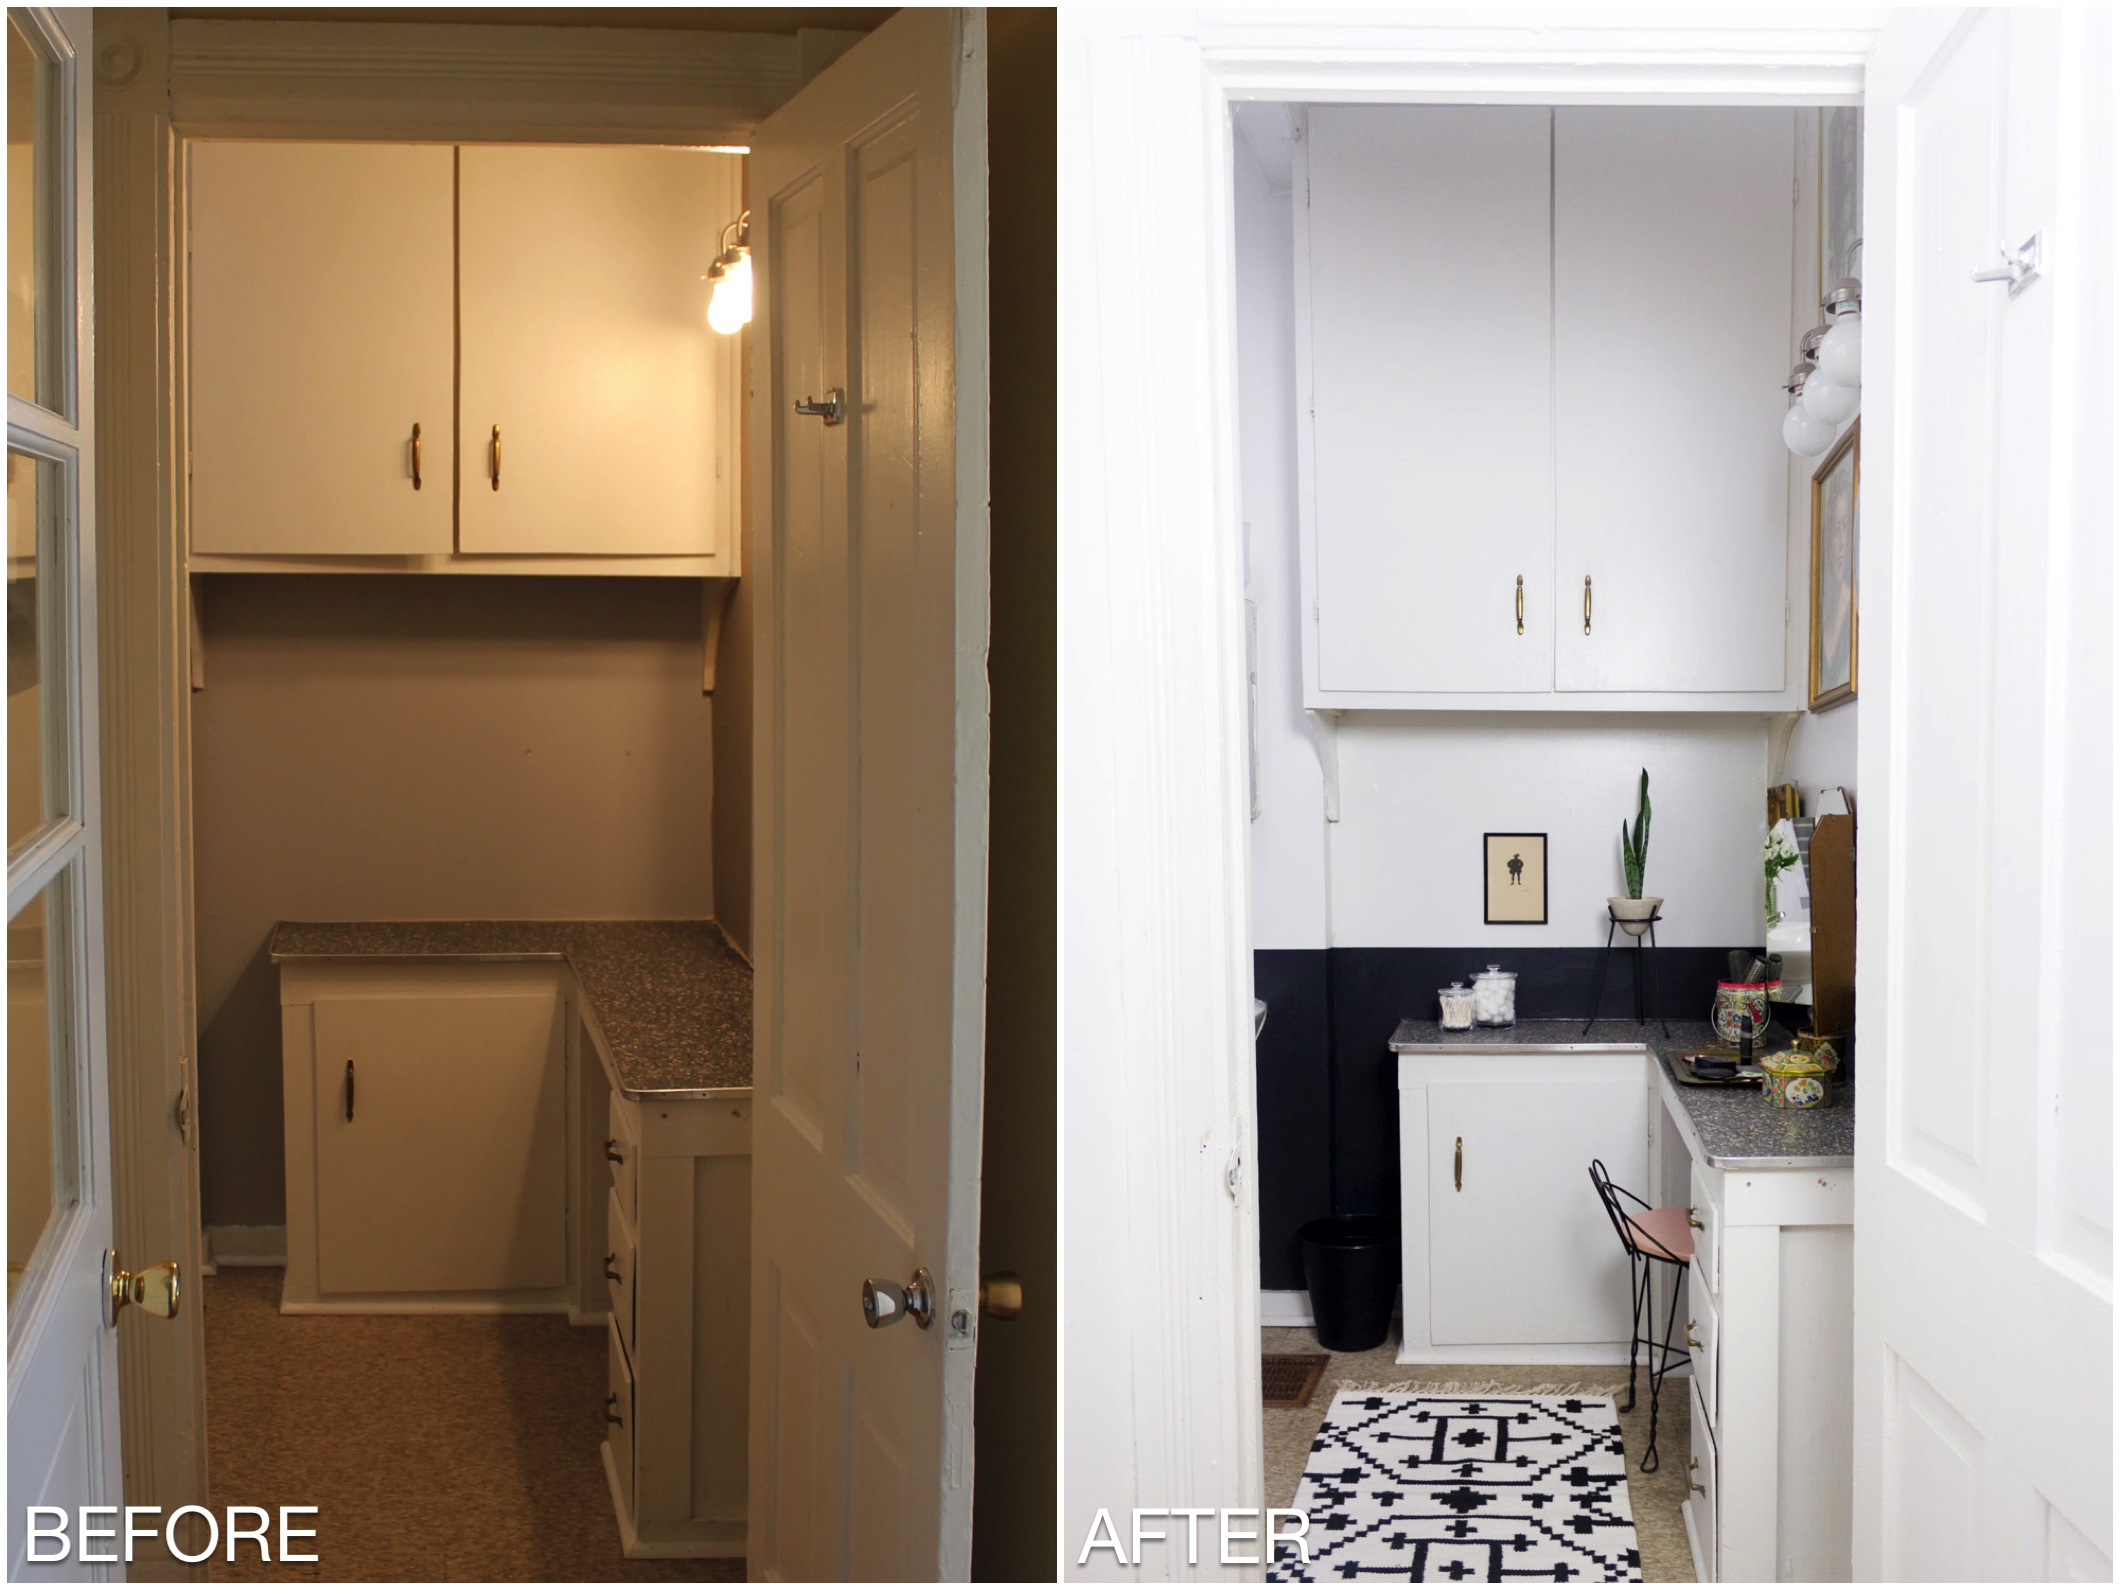 Black and white rental bathroom Before/After